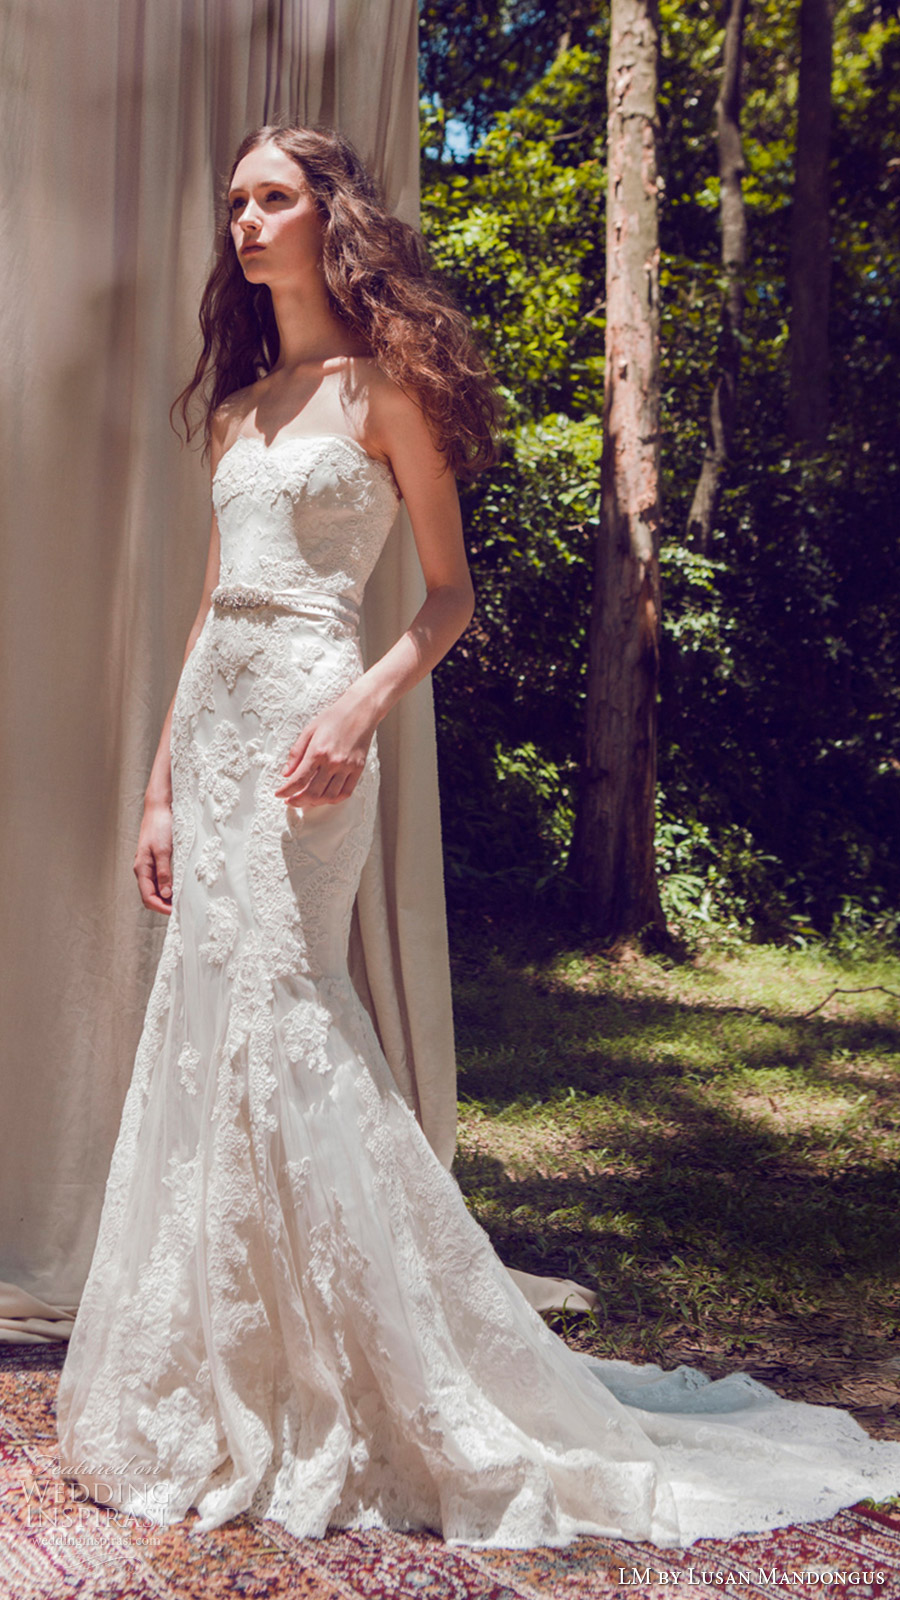 lm lusan mandongus bridal 2017 strapless sweetheart trumpet mermaid lace wedding dress (lm3068b) mv train